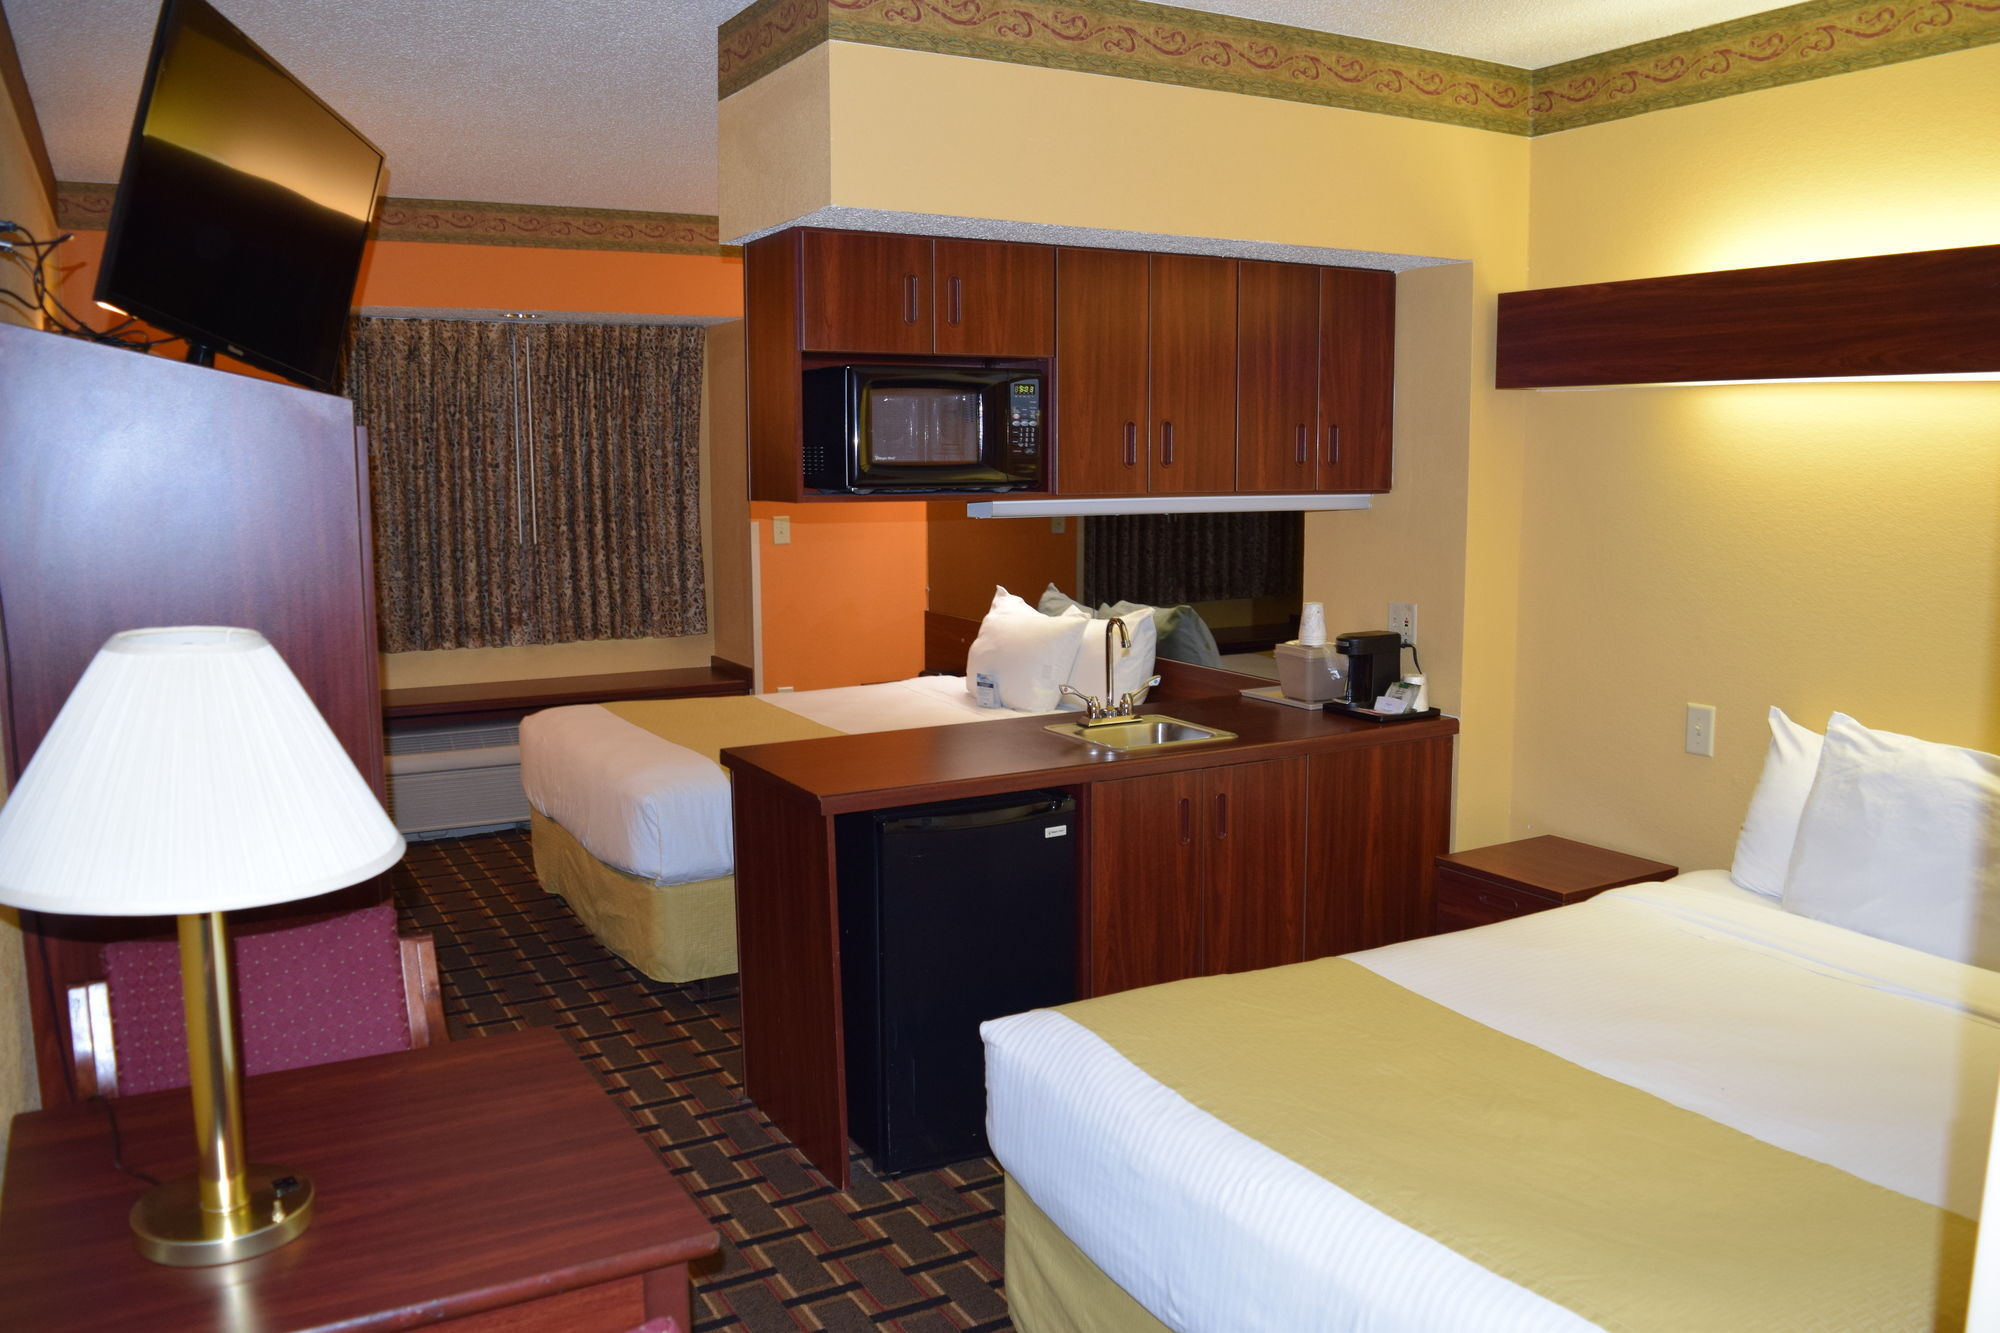 Microtel Inns & Suites in Rock Hill, SC